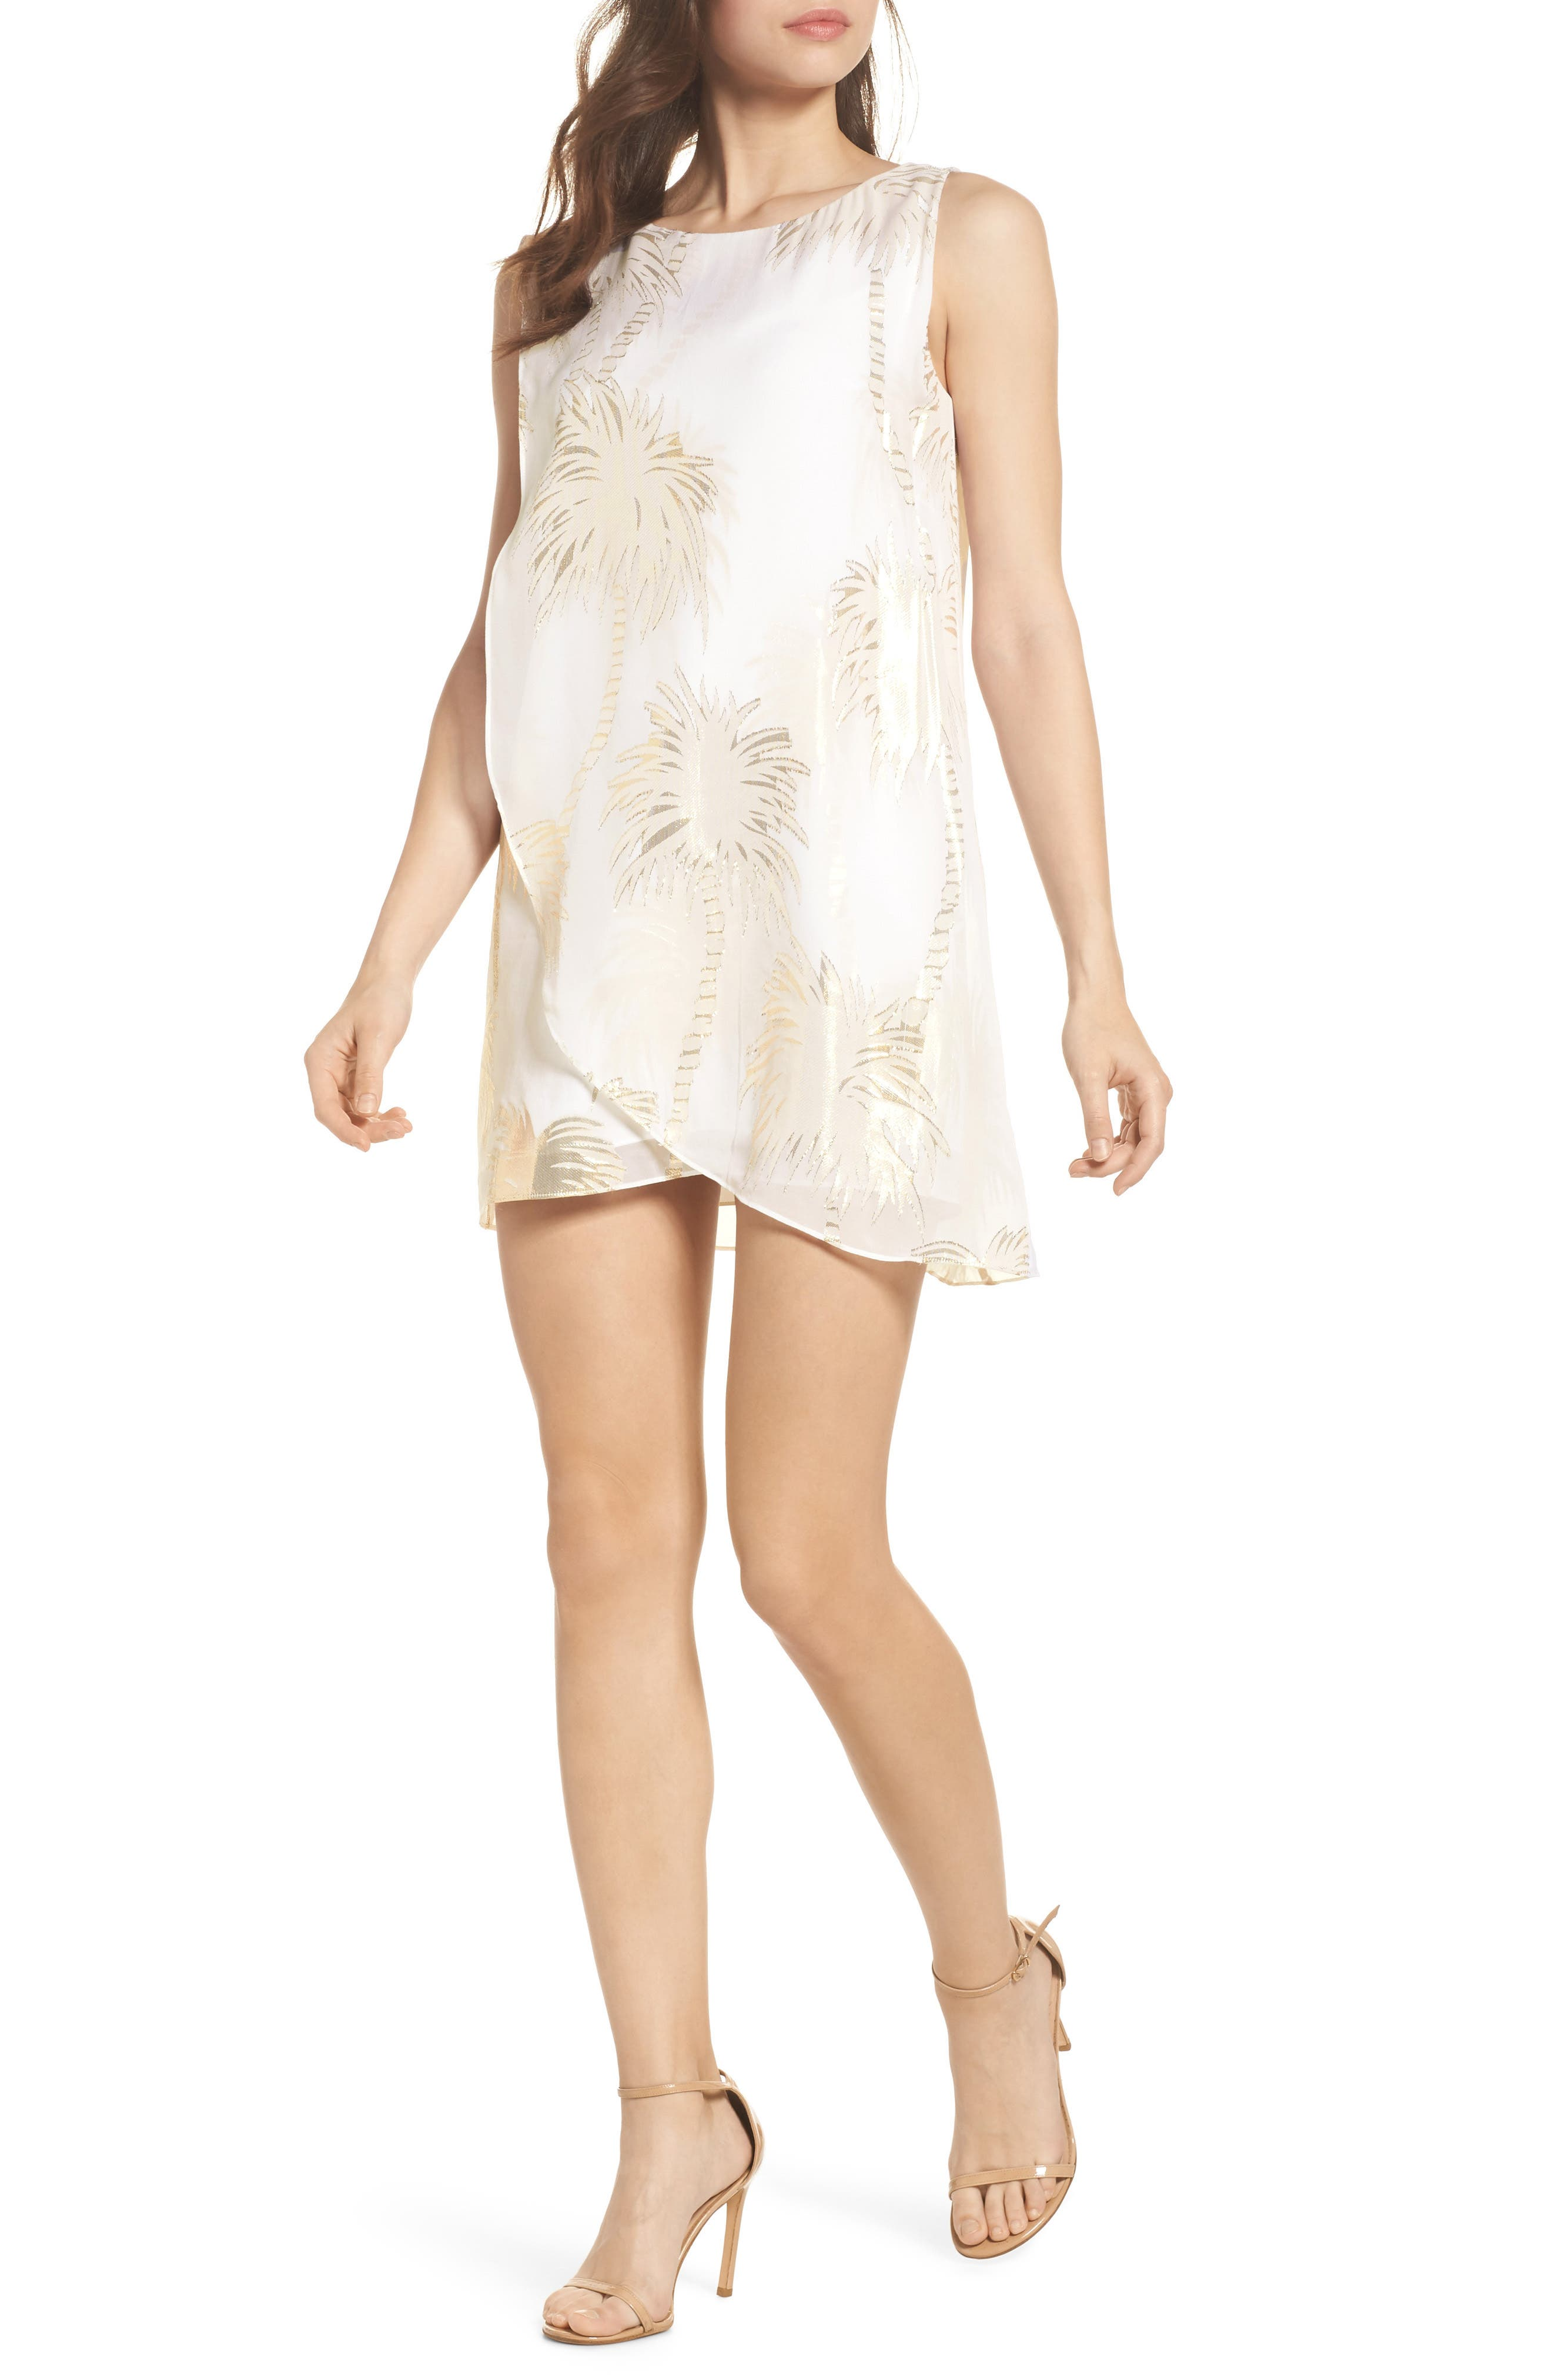 Calissa Silk Dress,                             Main thumbnail 1, color,                             Resort White Palm Tree Clip